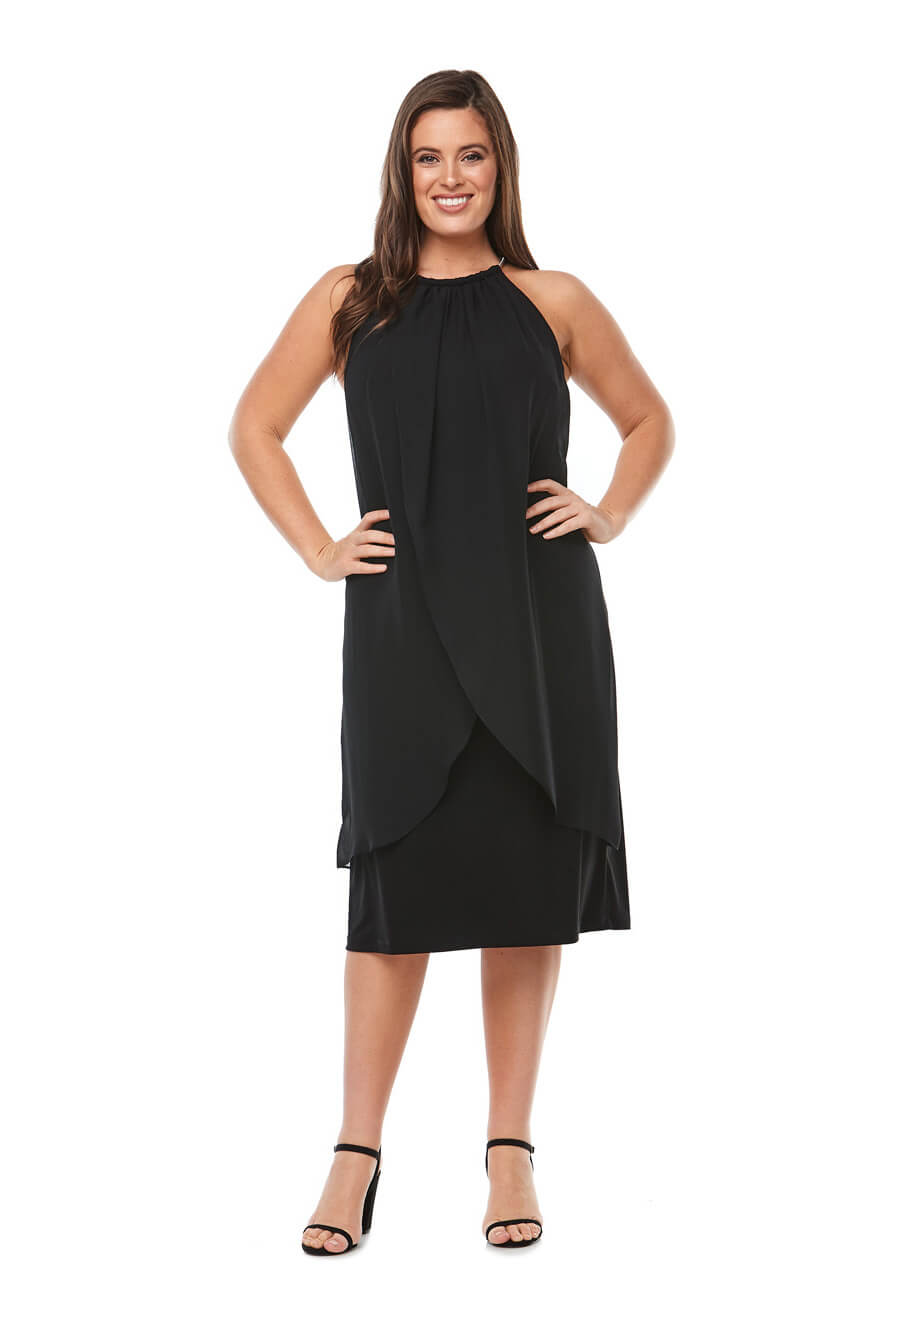 layered chiffon cocktaildress with cut away sleeves